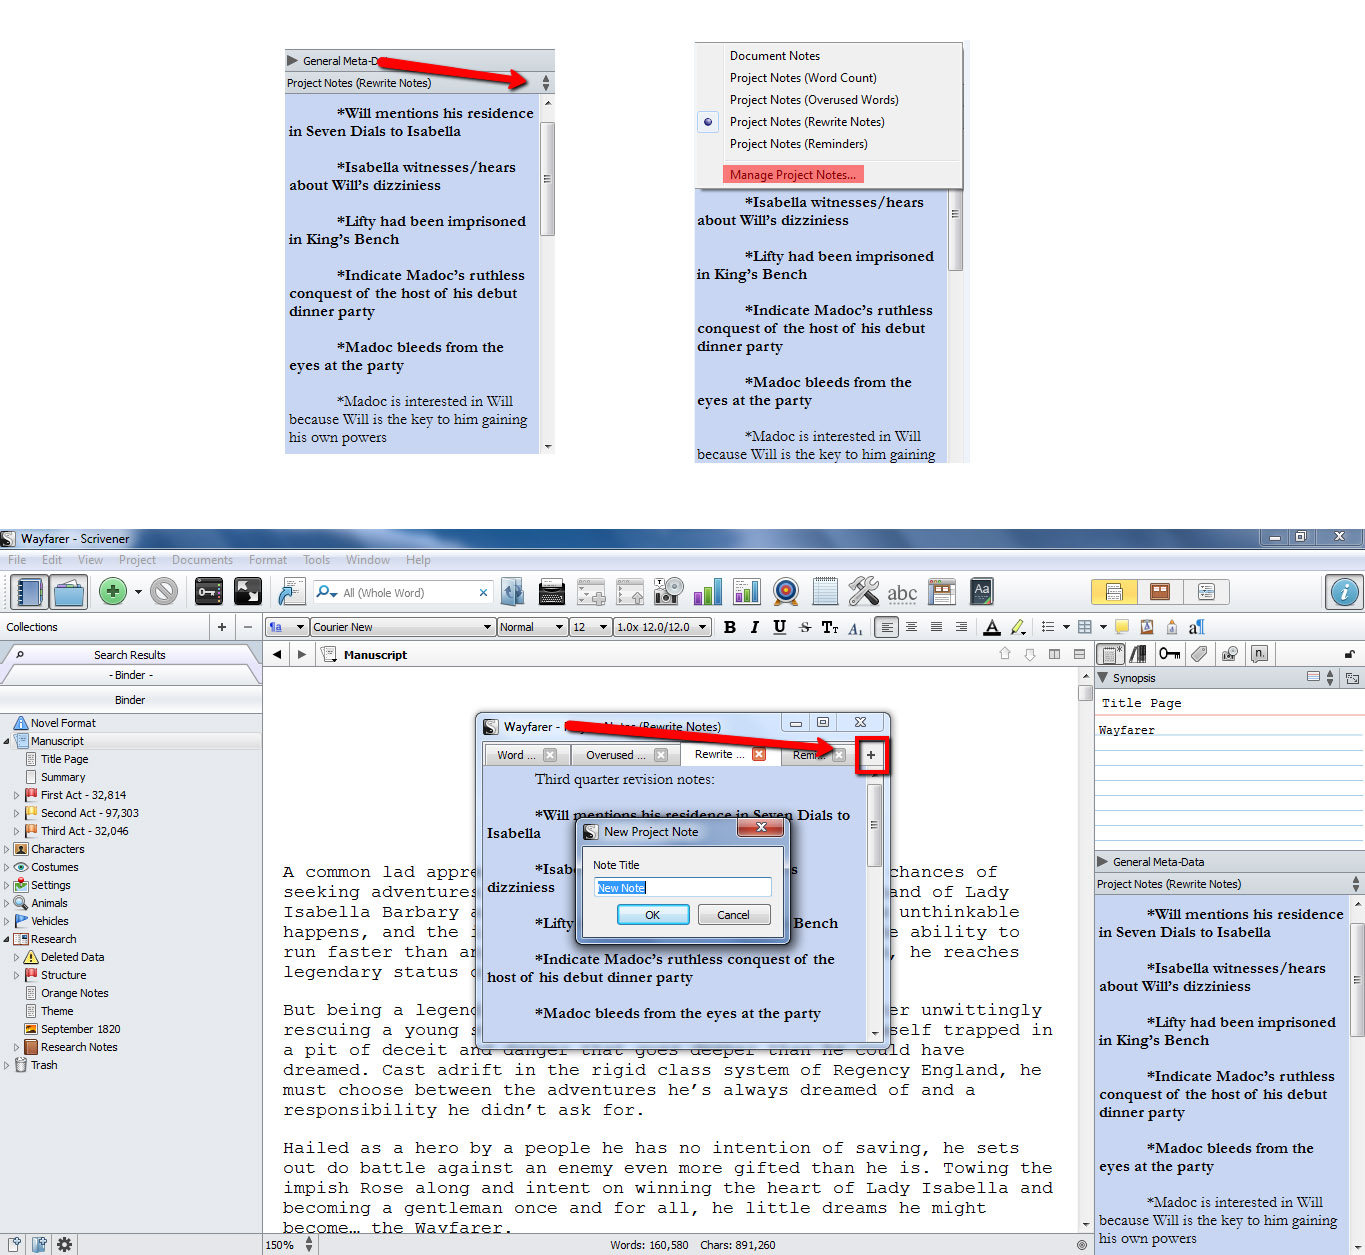 How to Add More Project Notes in Scrivener